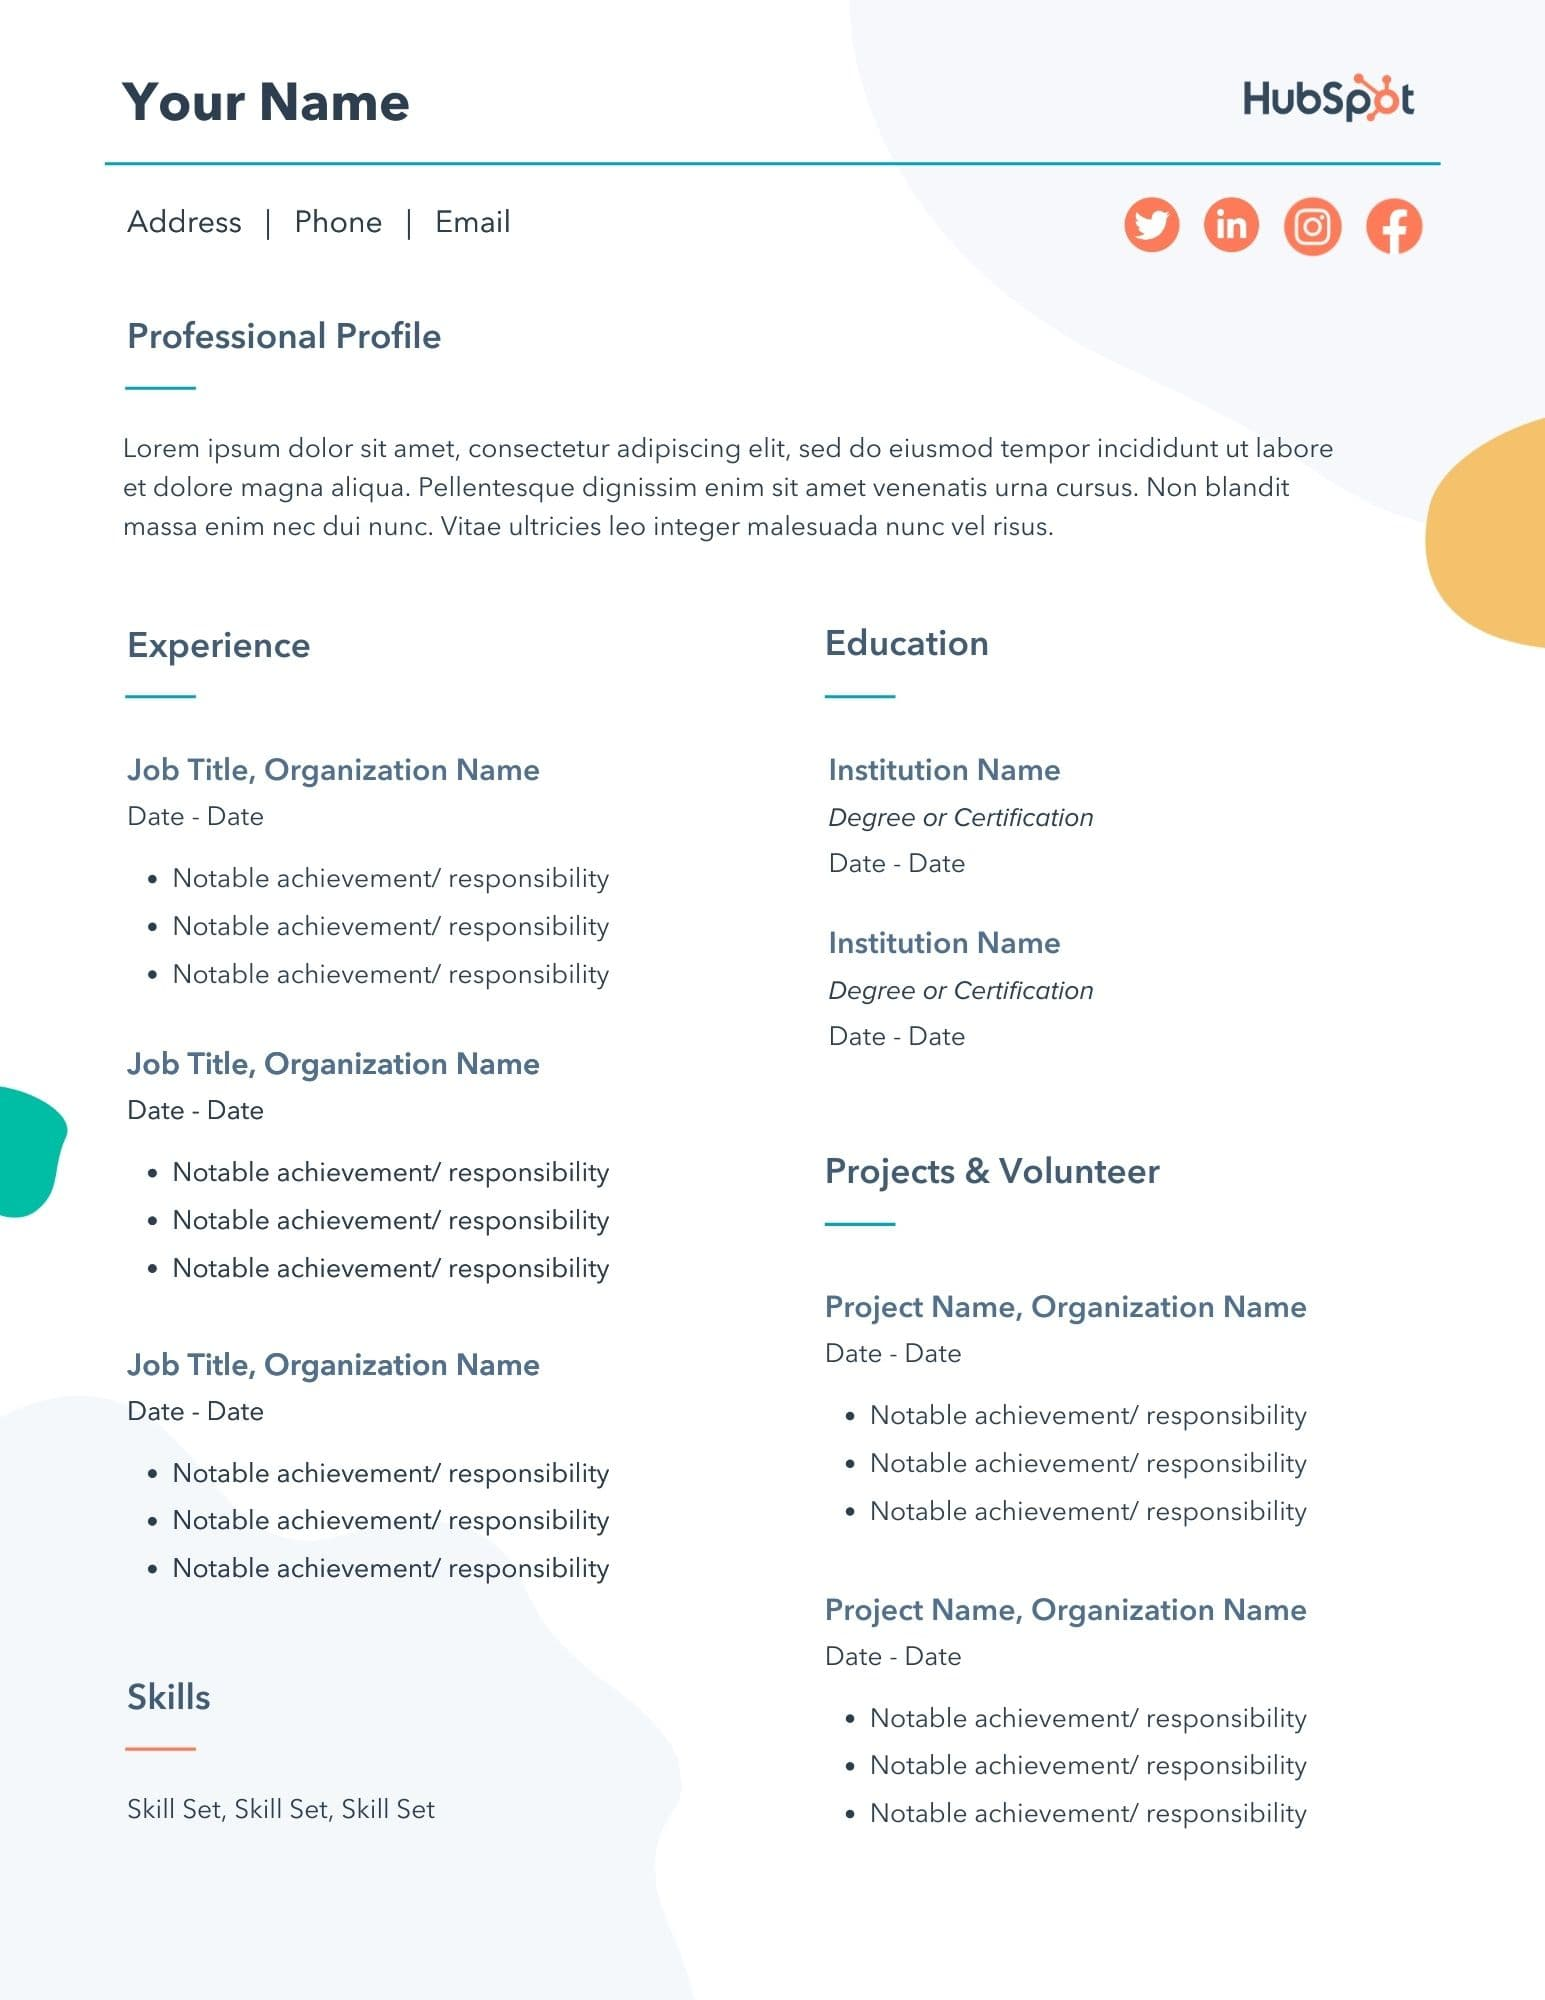 free resume templates for microsoft word to make your own job template objective Resume Free Job Resume Templates